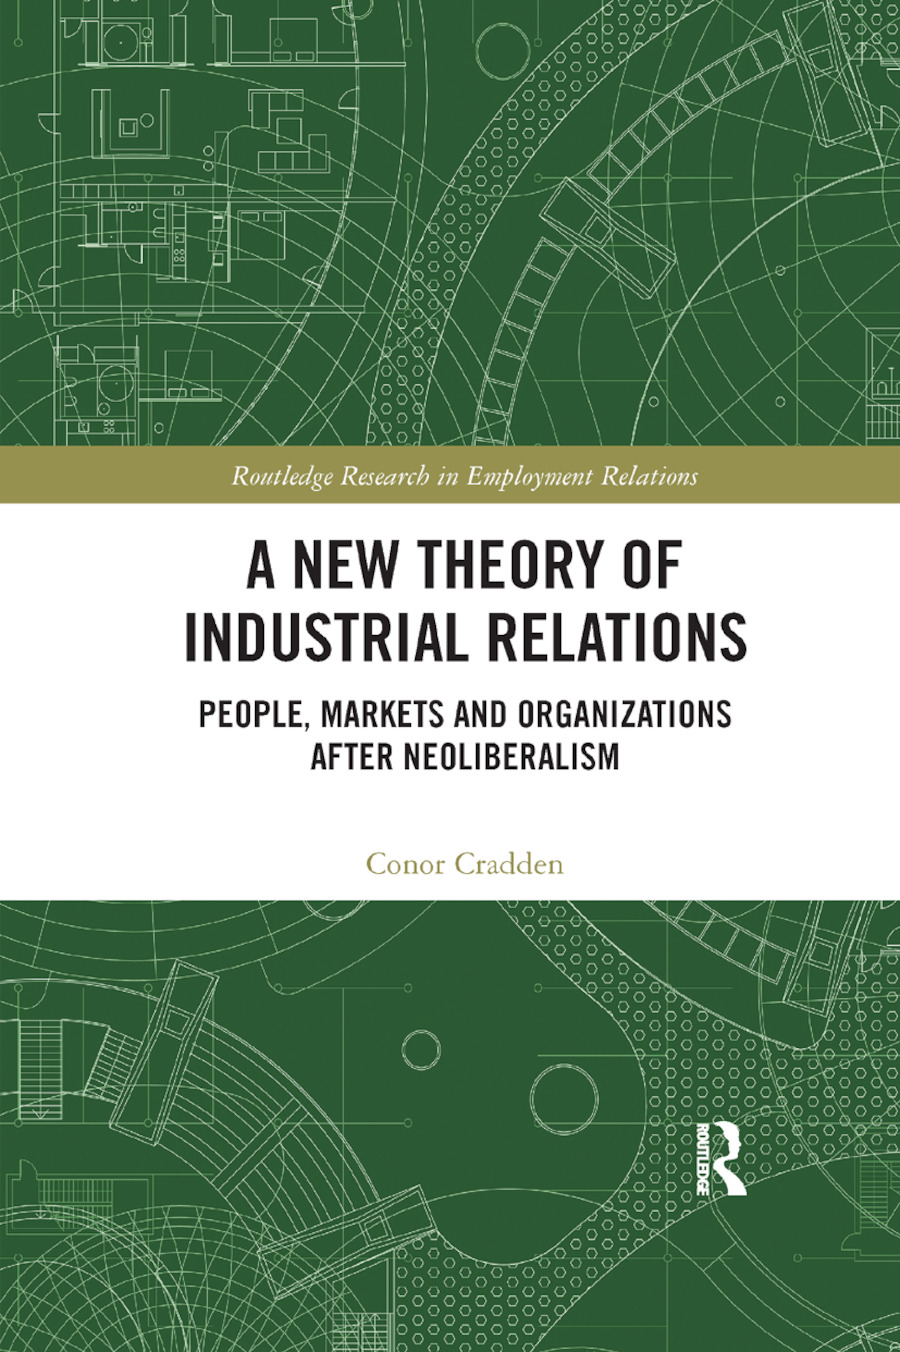 A New Theory of Industrial Relations: People, Markets and Organizations after Neoliberalism book cover